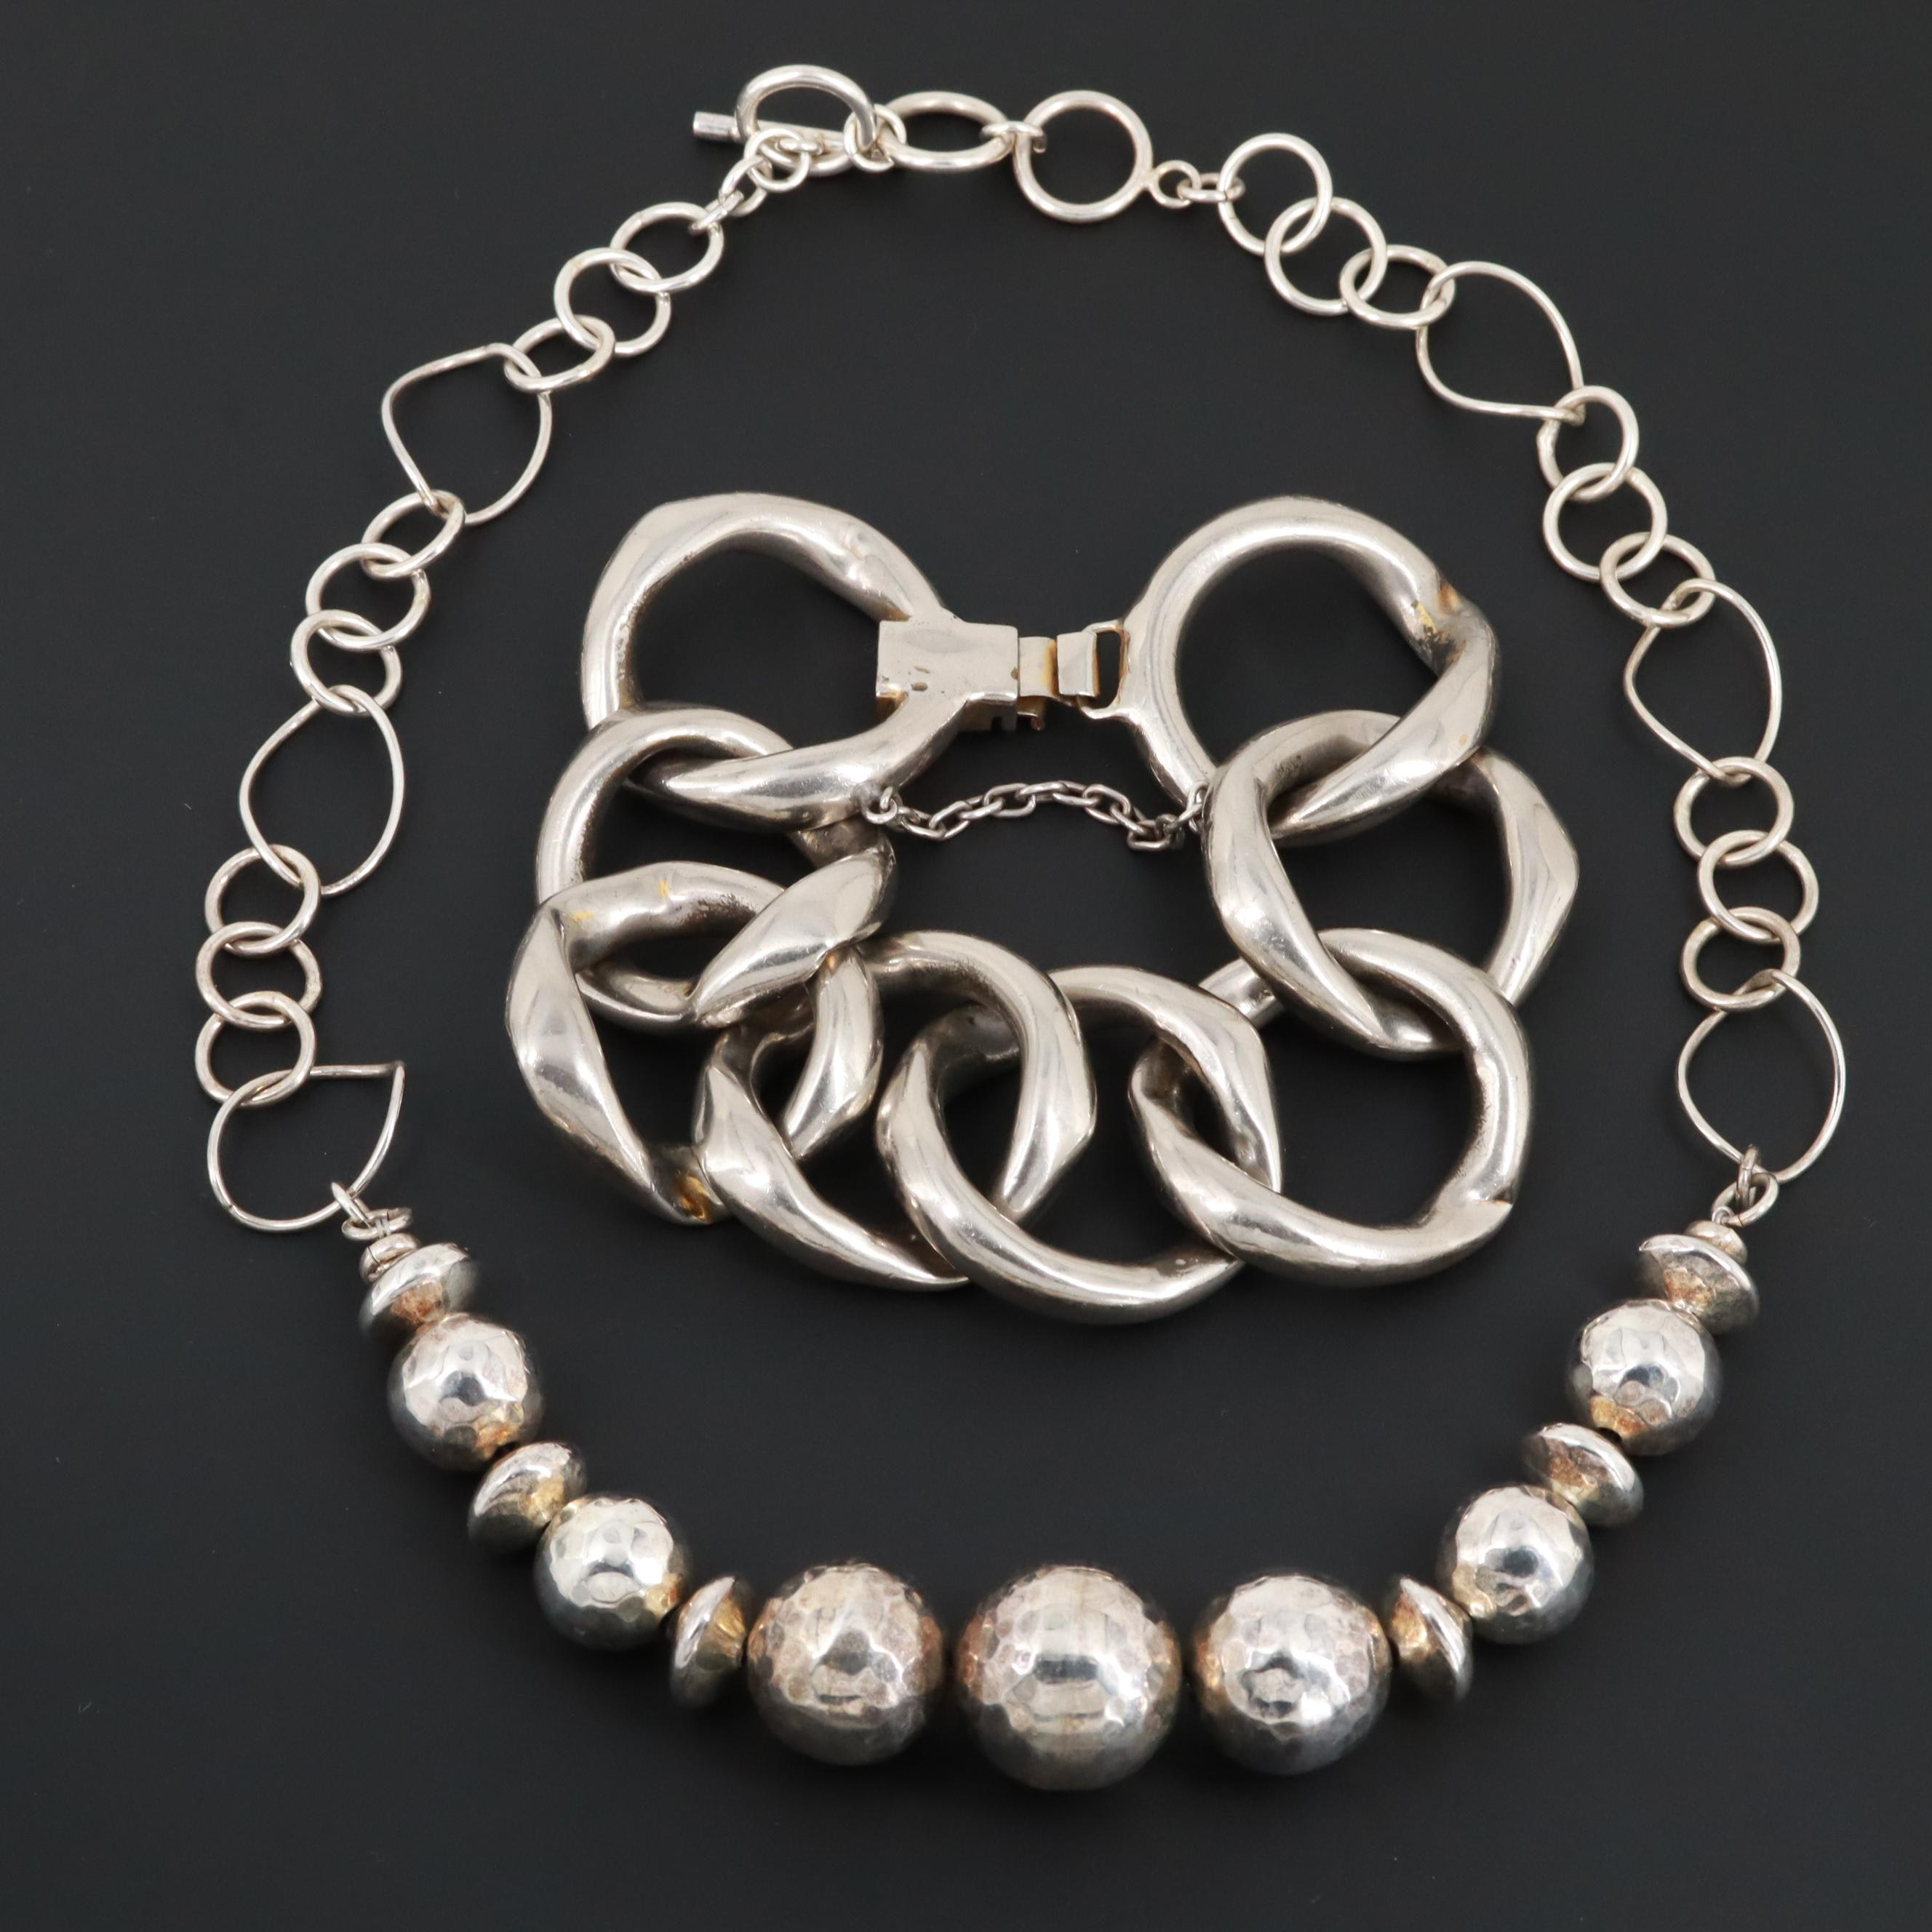 Silver Tone Necklace and Bracelet